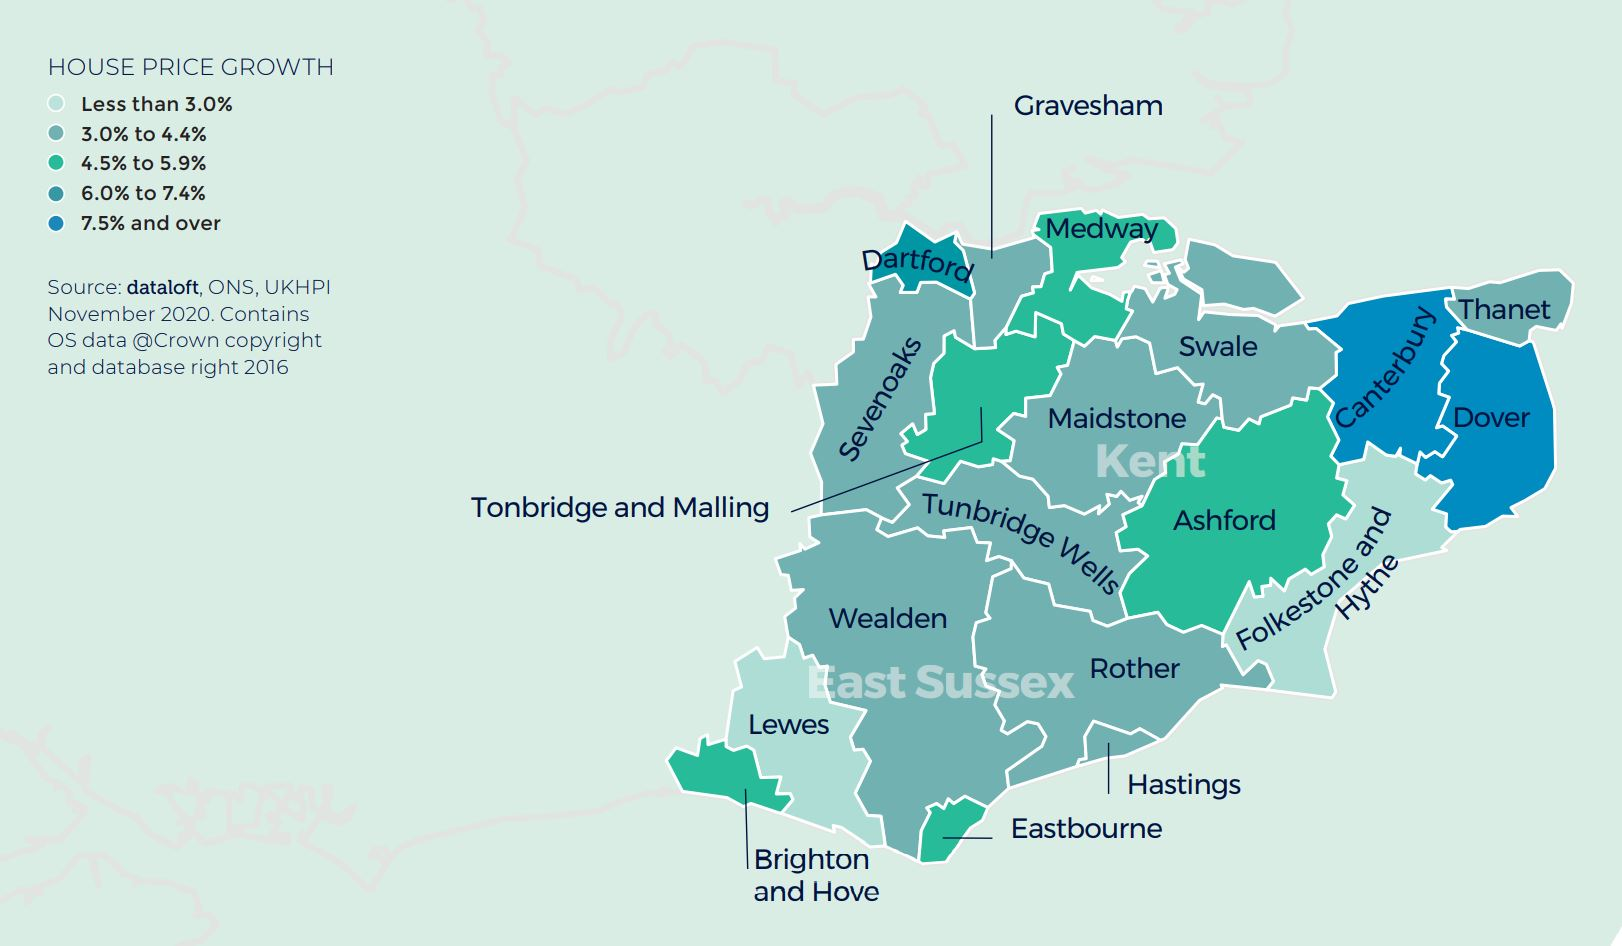 south east home counties kent east sussex regional property market report house price growth